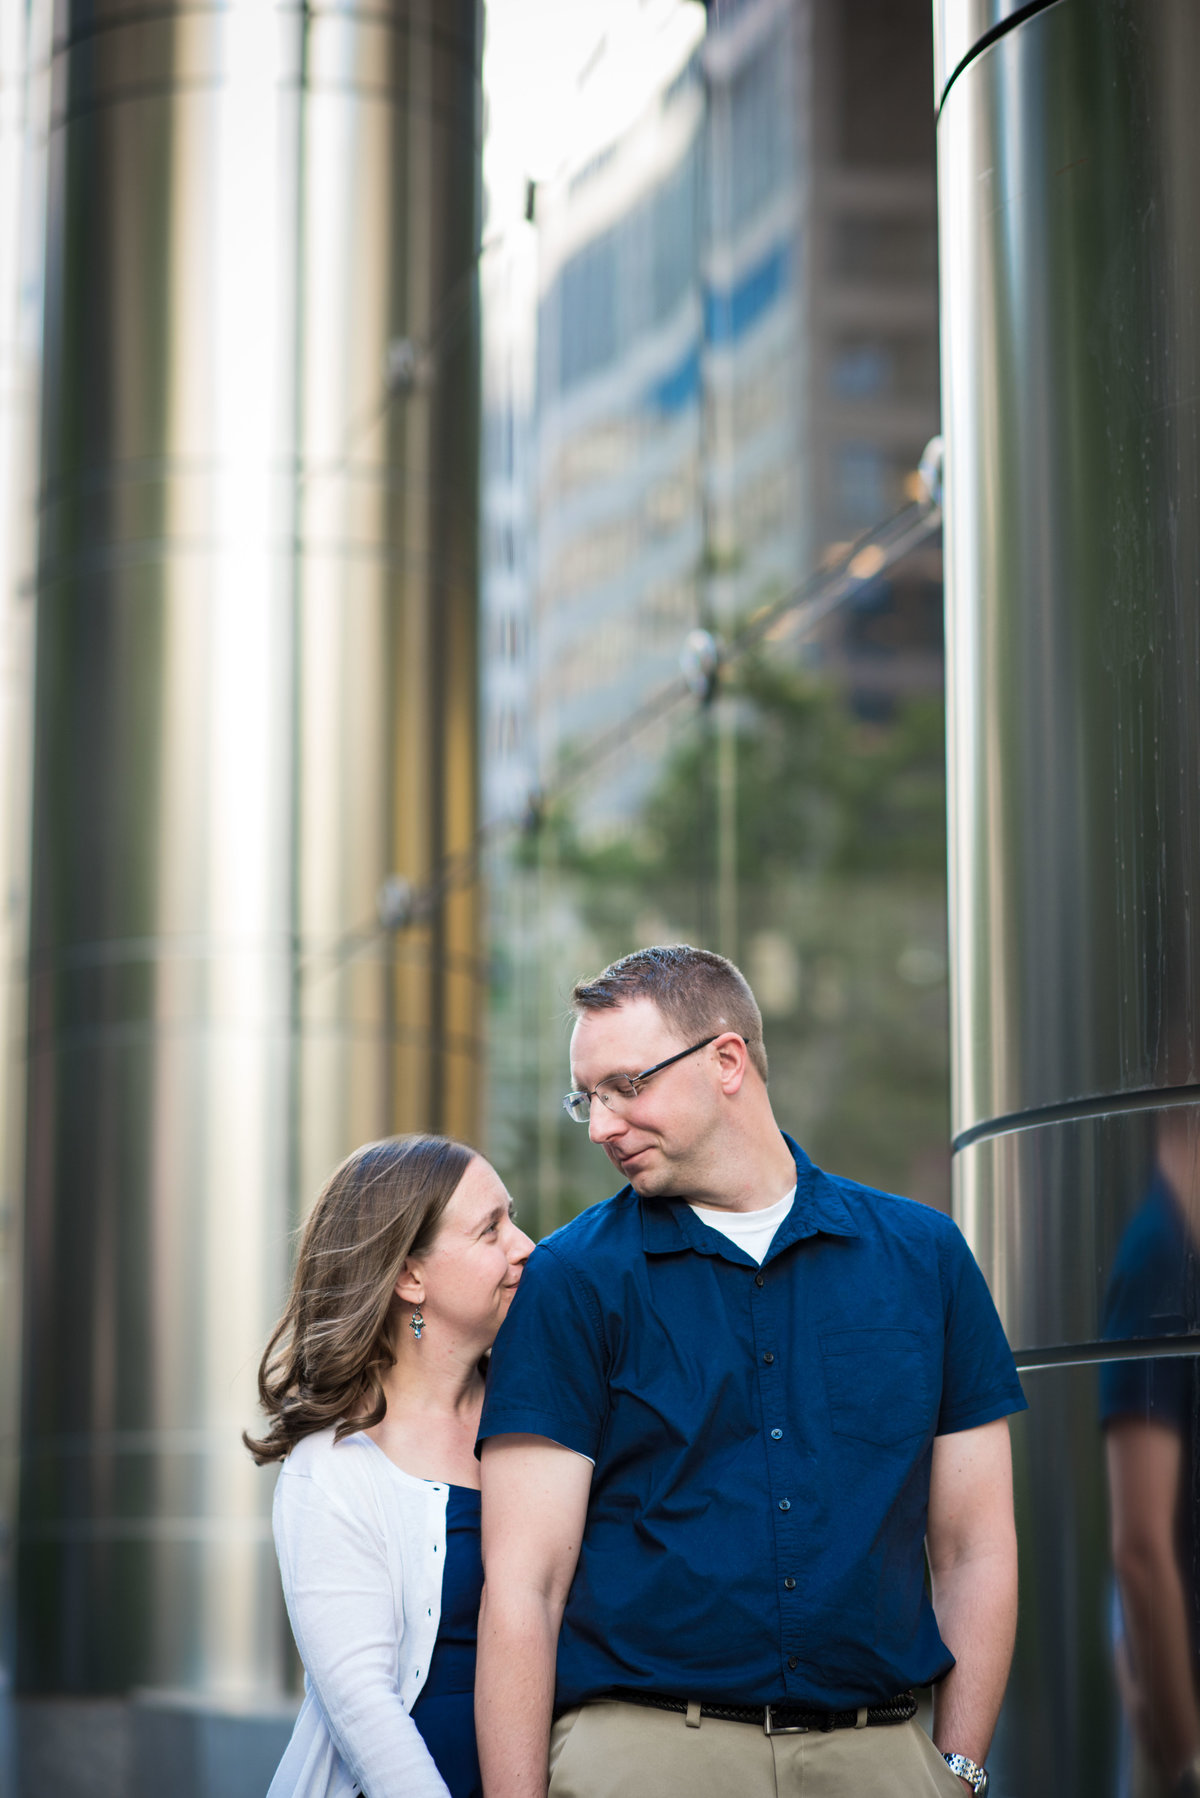 Engaged couple poses, Chicago IL.